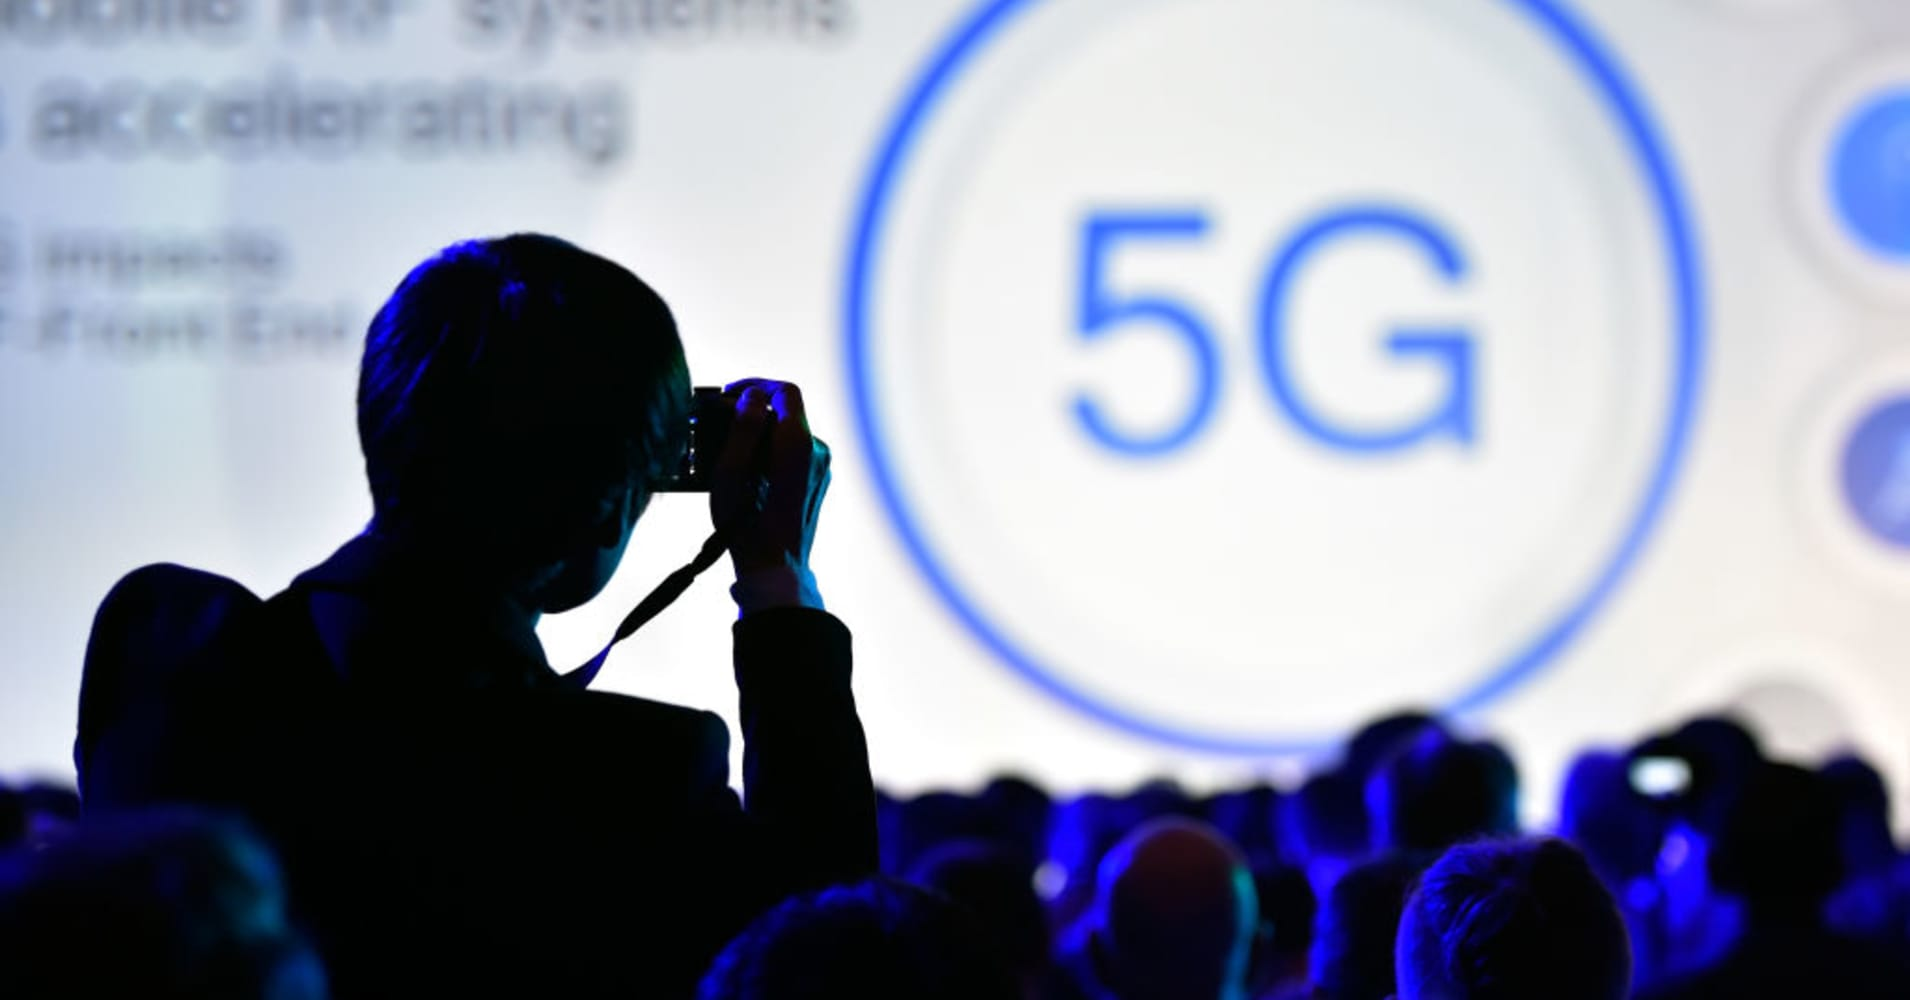 5G hasn't even arrived yet, but these ETFs based on the new technology are soaring